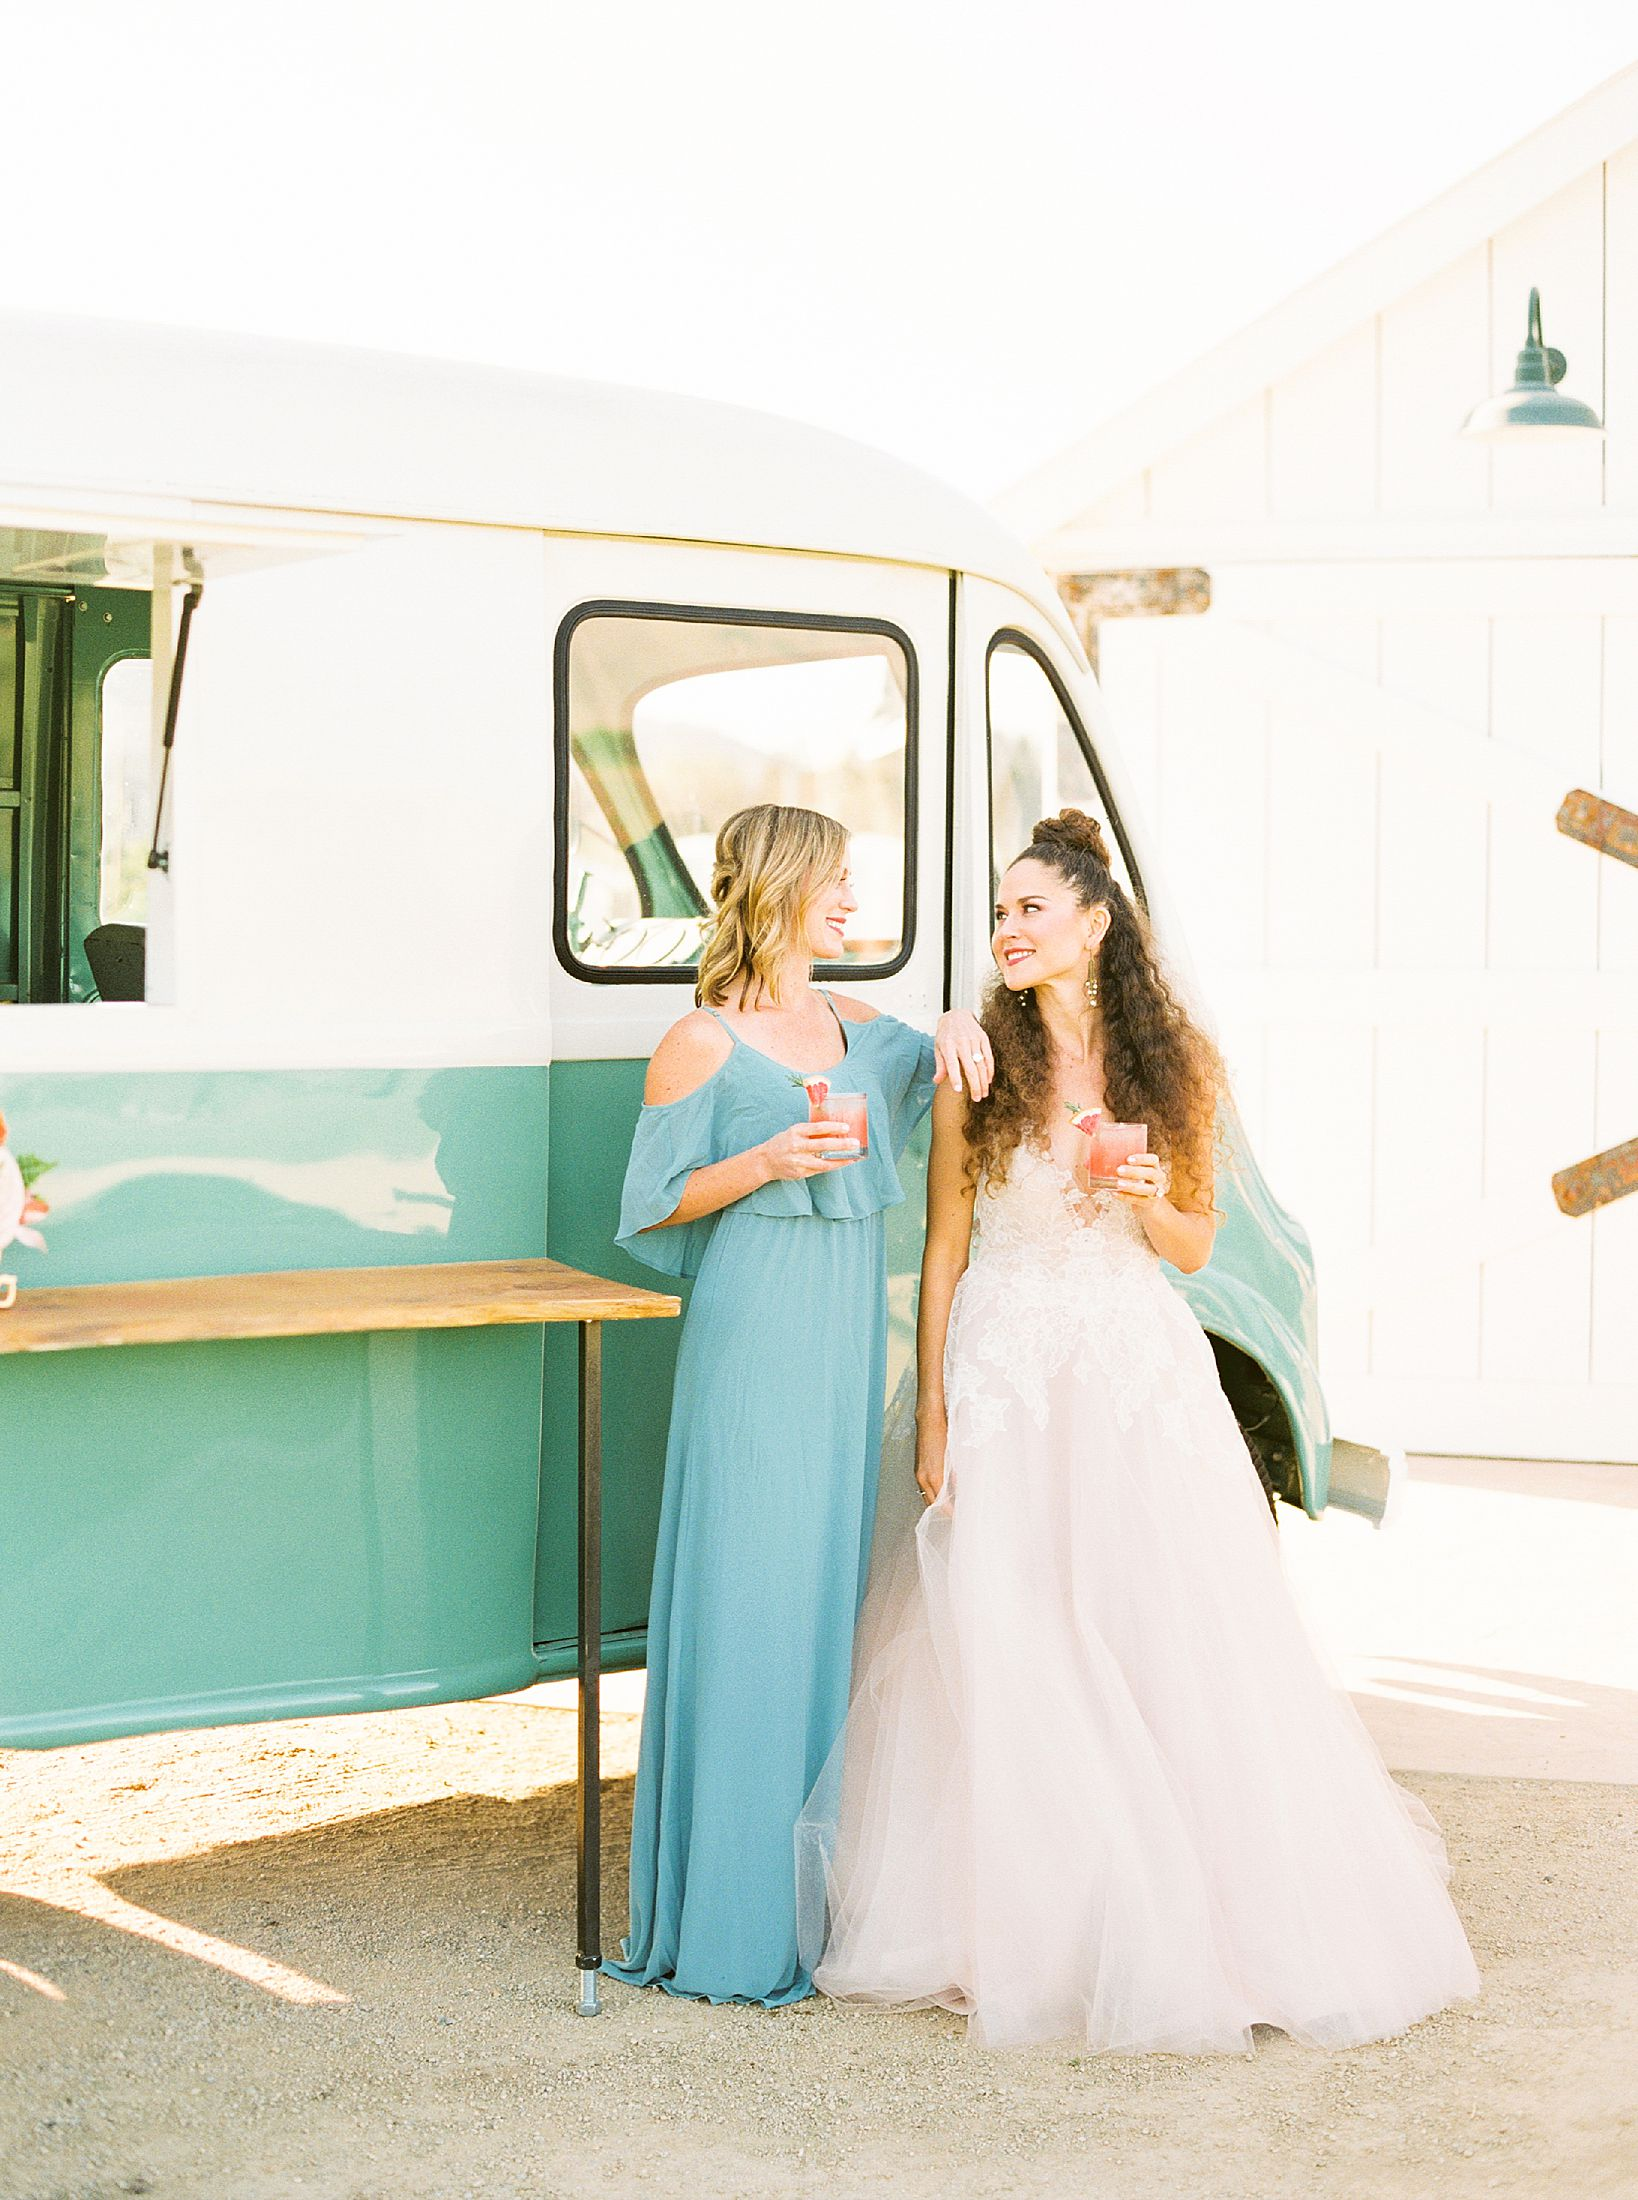 White Barn Edna Valley Wedding Inspiration - San Luis Obispo Wedding - Featured on Green Wedding Shoes - Ashley Baumgartner - FM Events SLO - SLO Wedding Photographer_0014.jpg